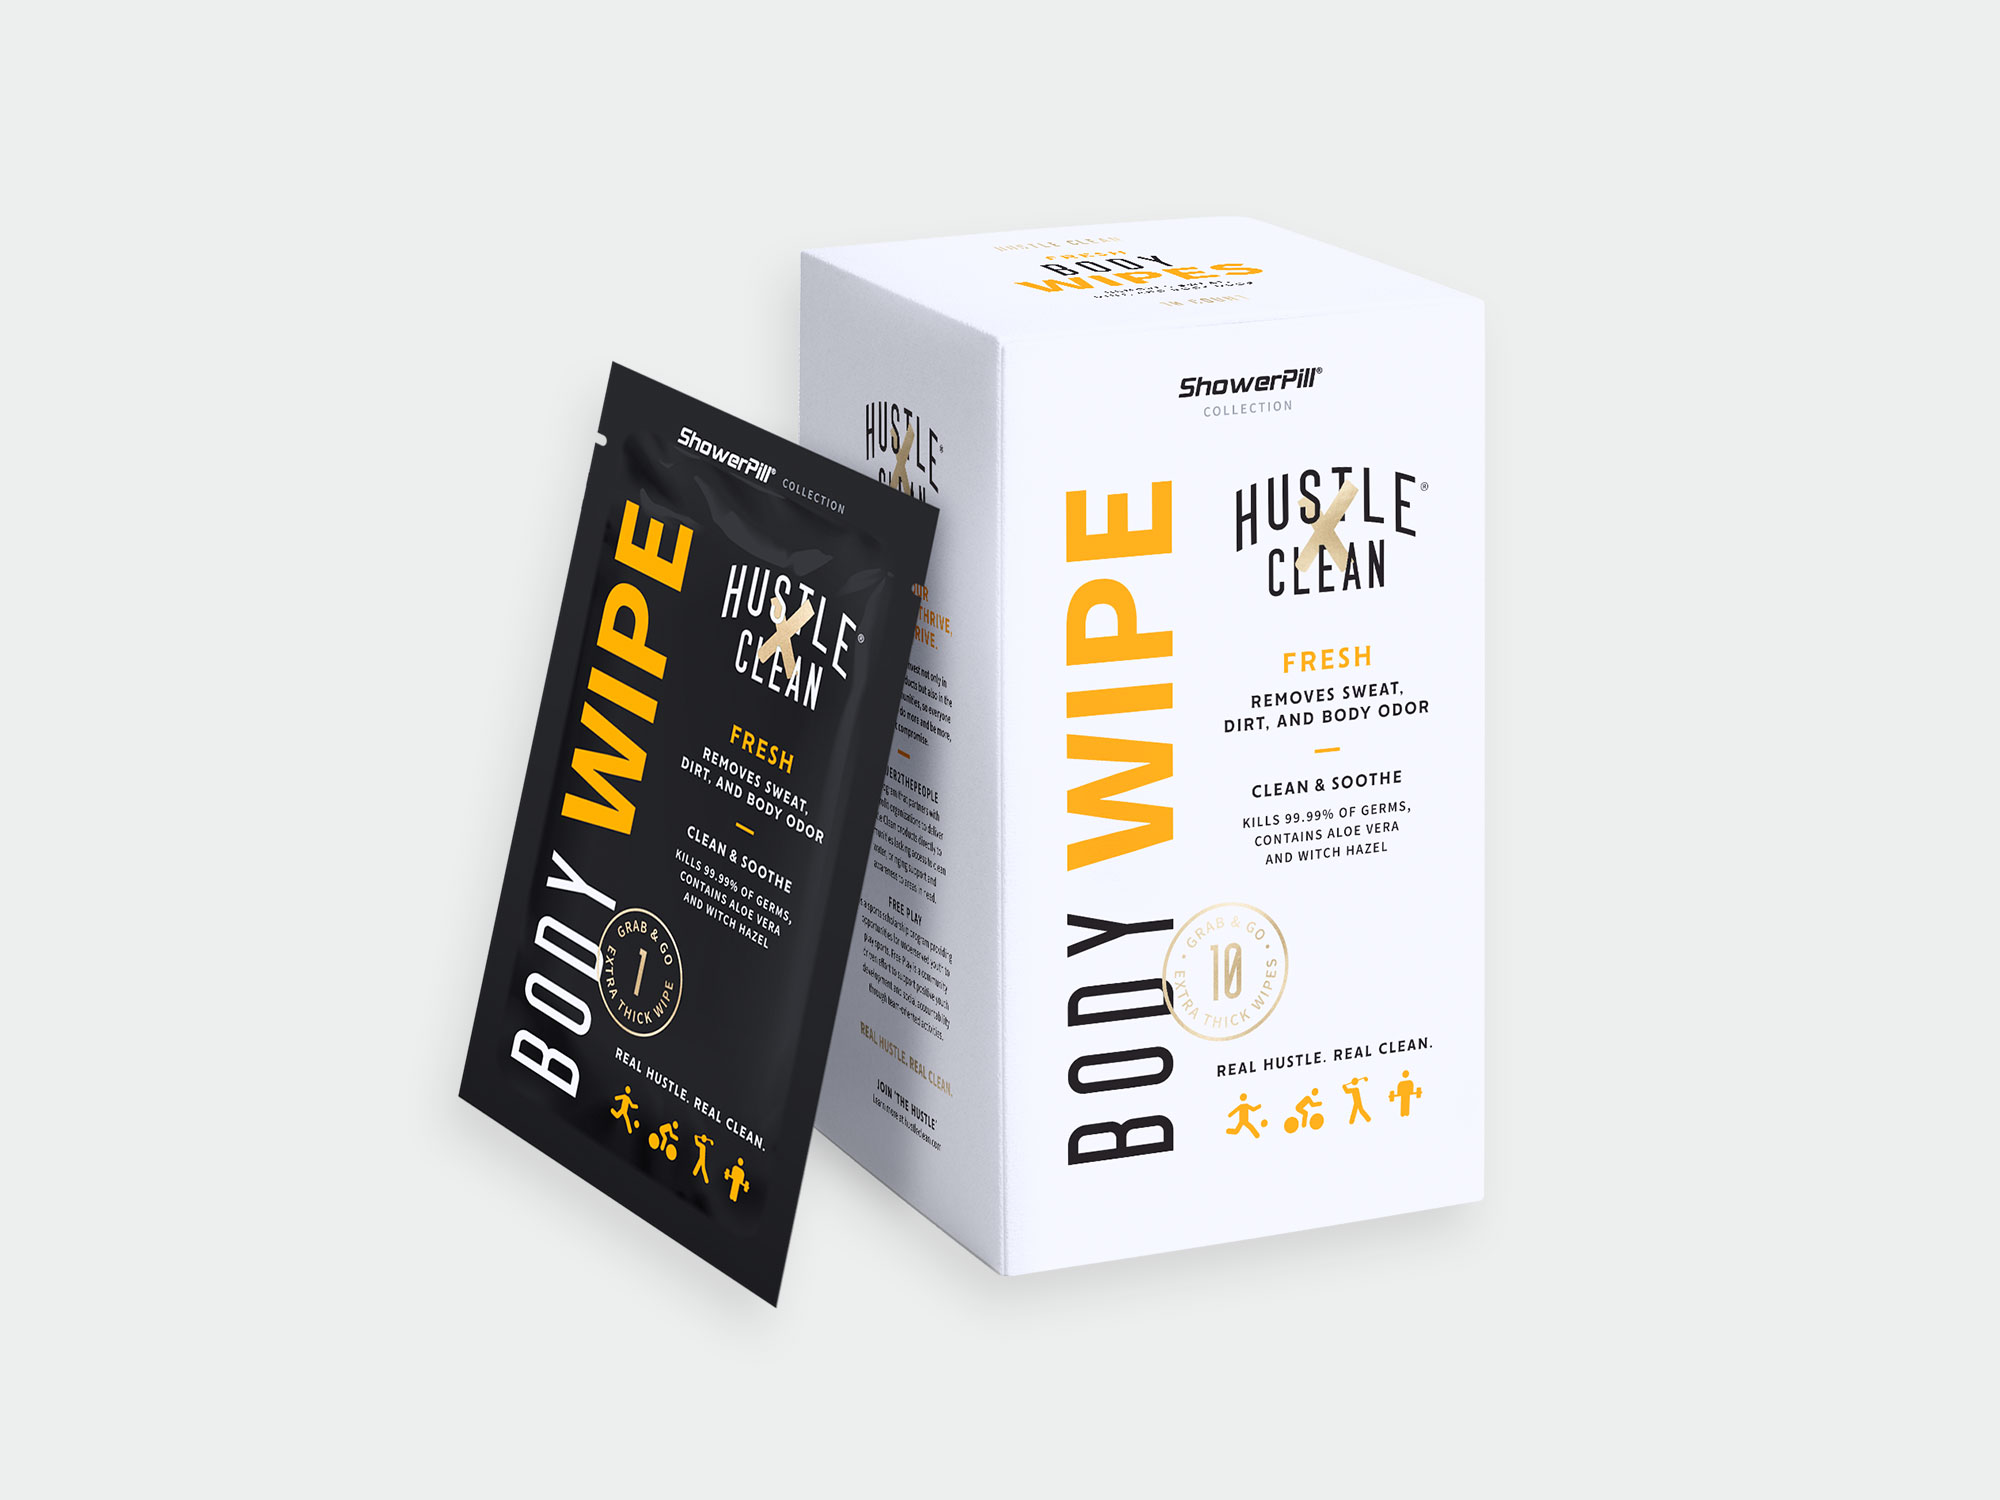 The body wipe product package